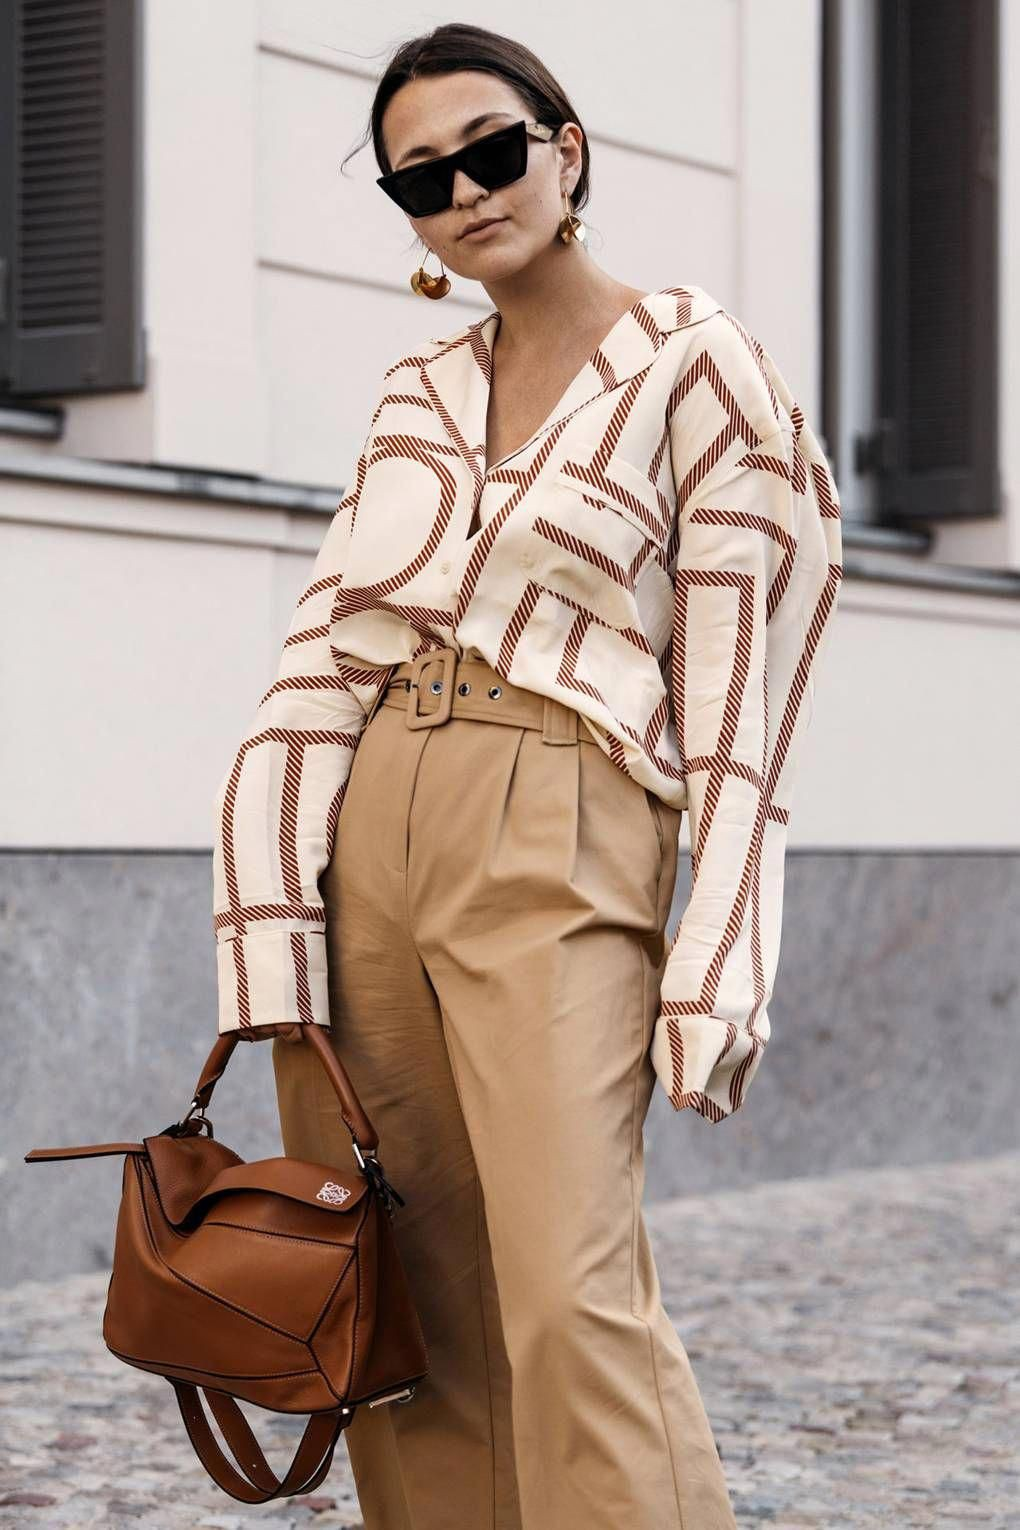 Berlin fashion week street style 2020